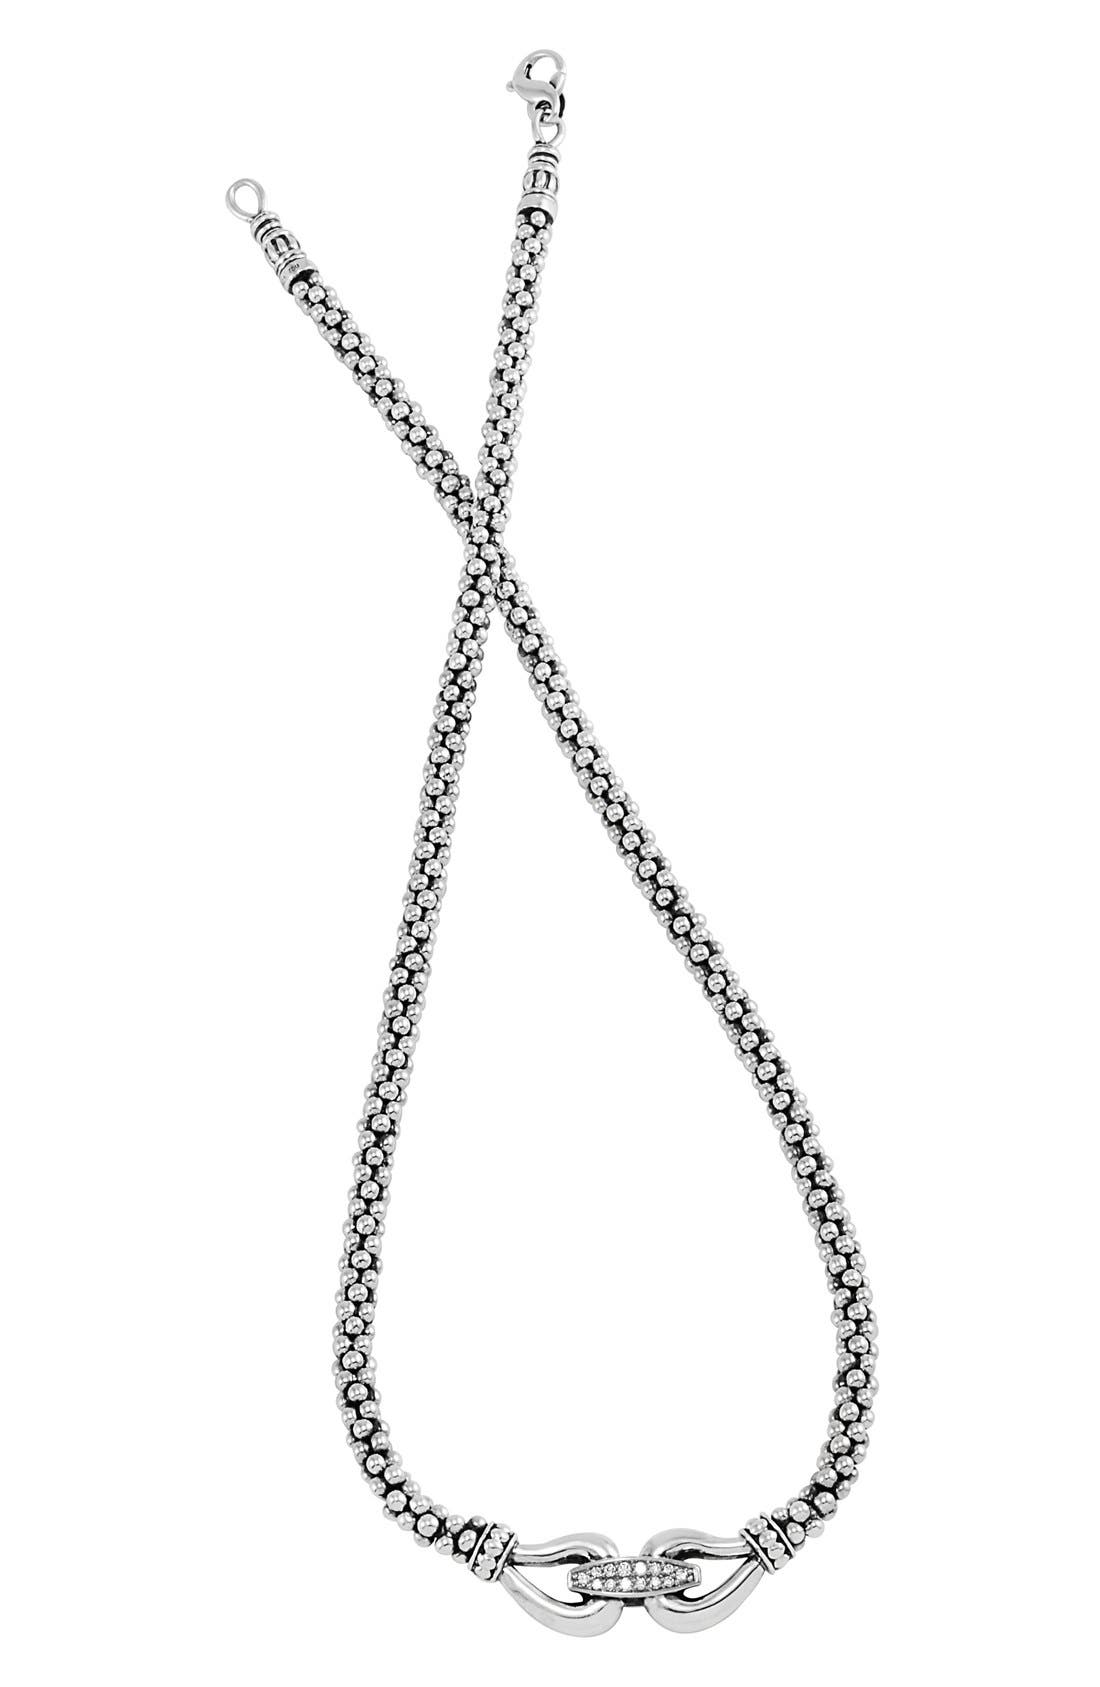 'Derby' Diamond Strand Necklace,                             Main thumbnail 1, color,                             Silver